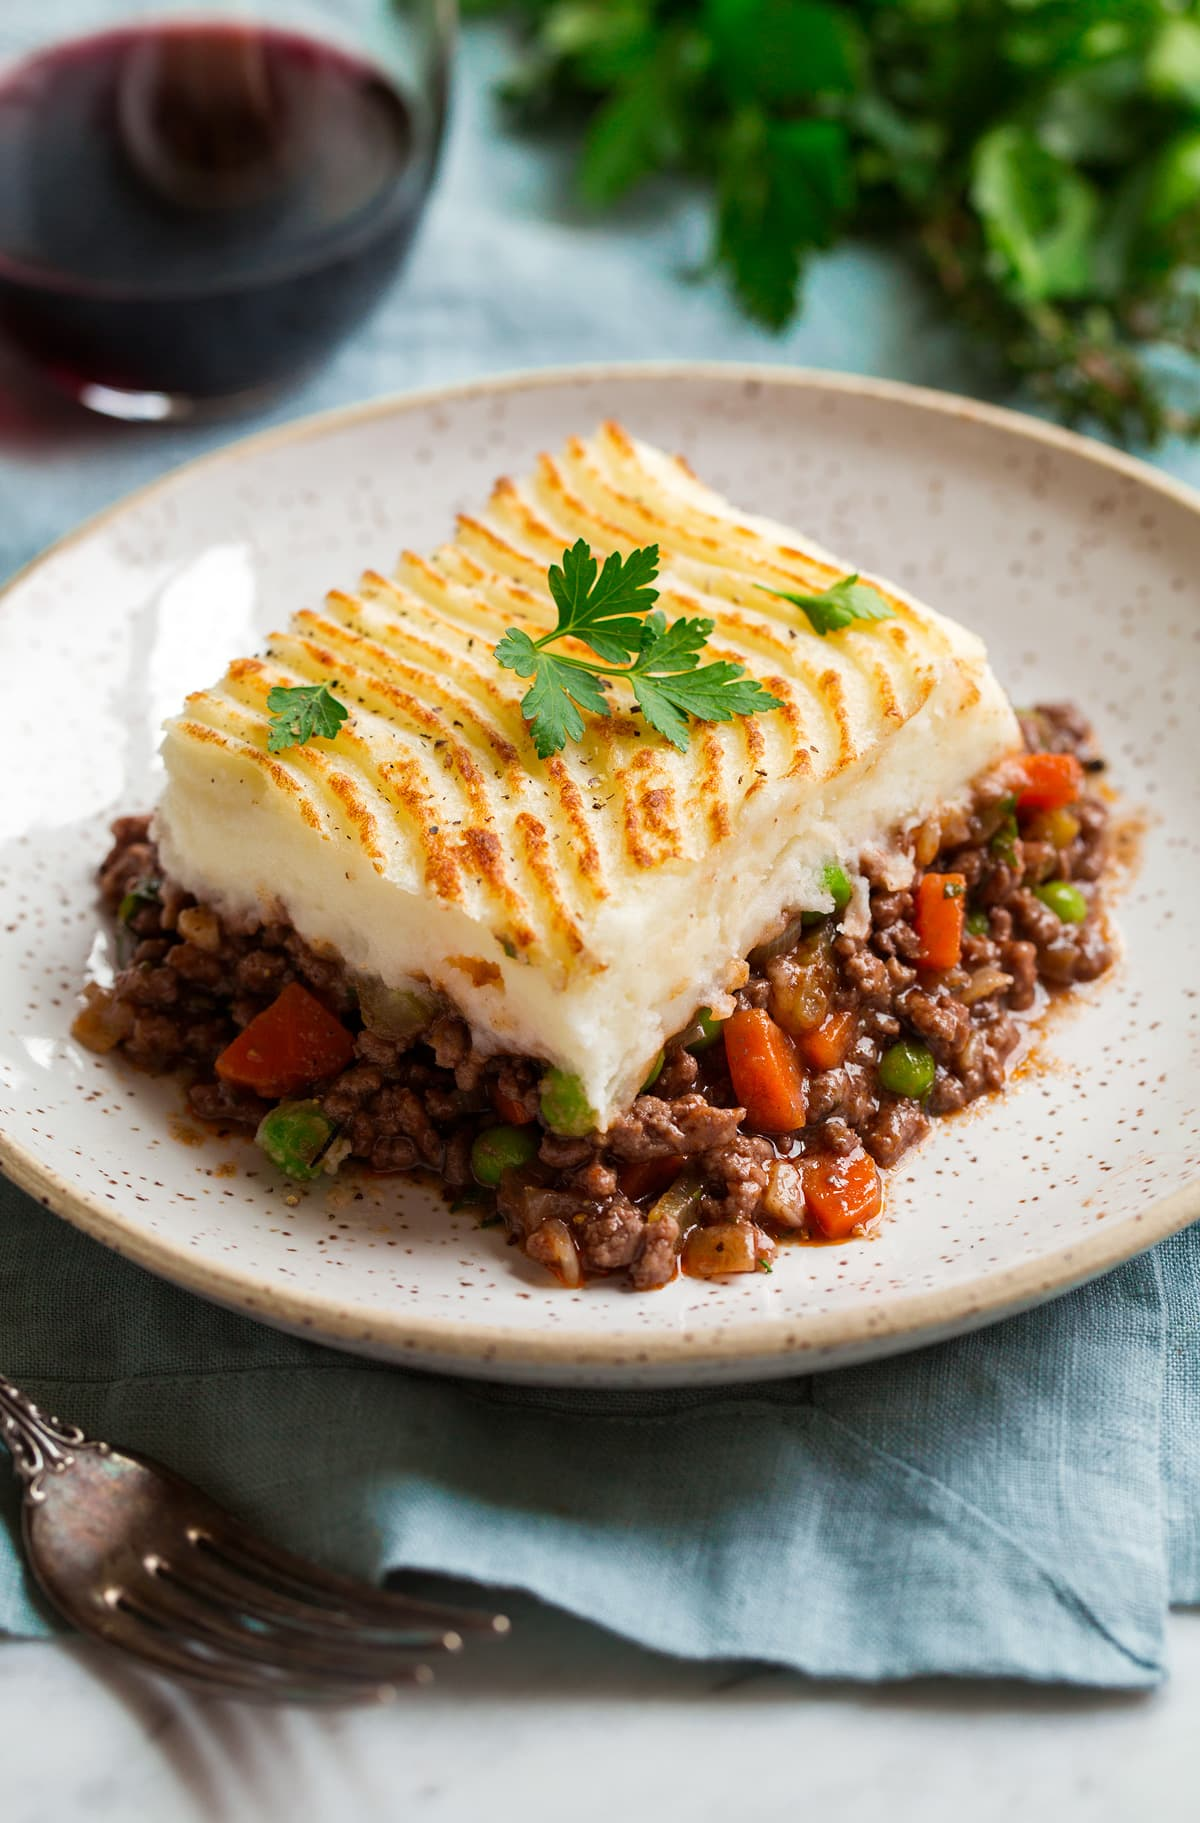 Cut serving of shepherd's pie on a serving plate.